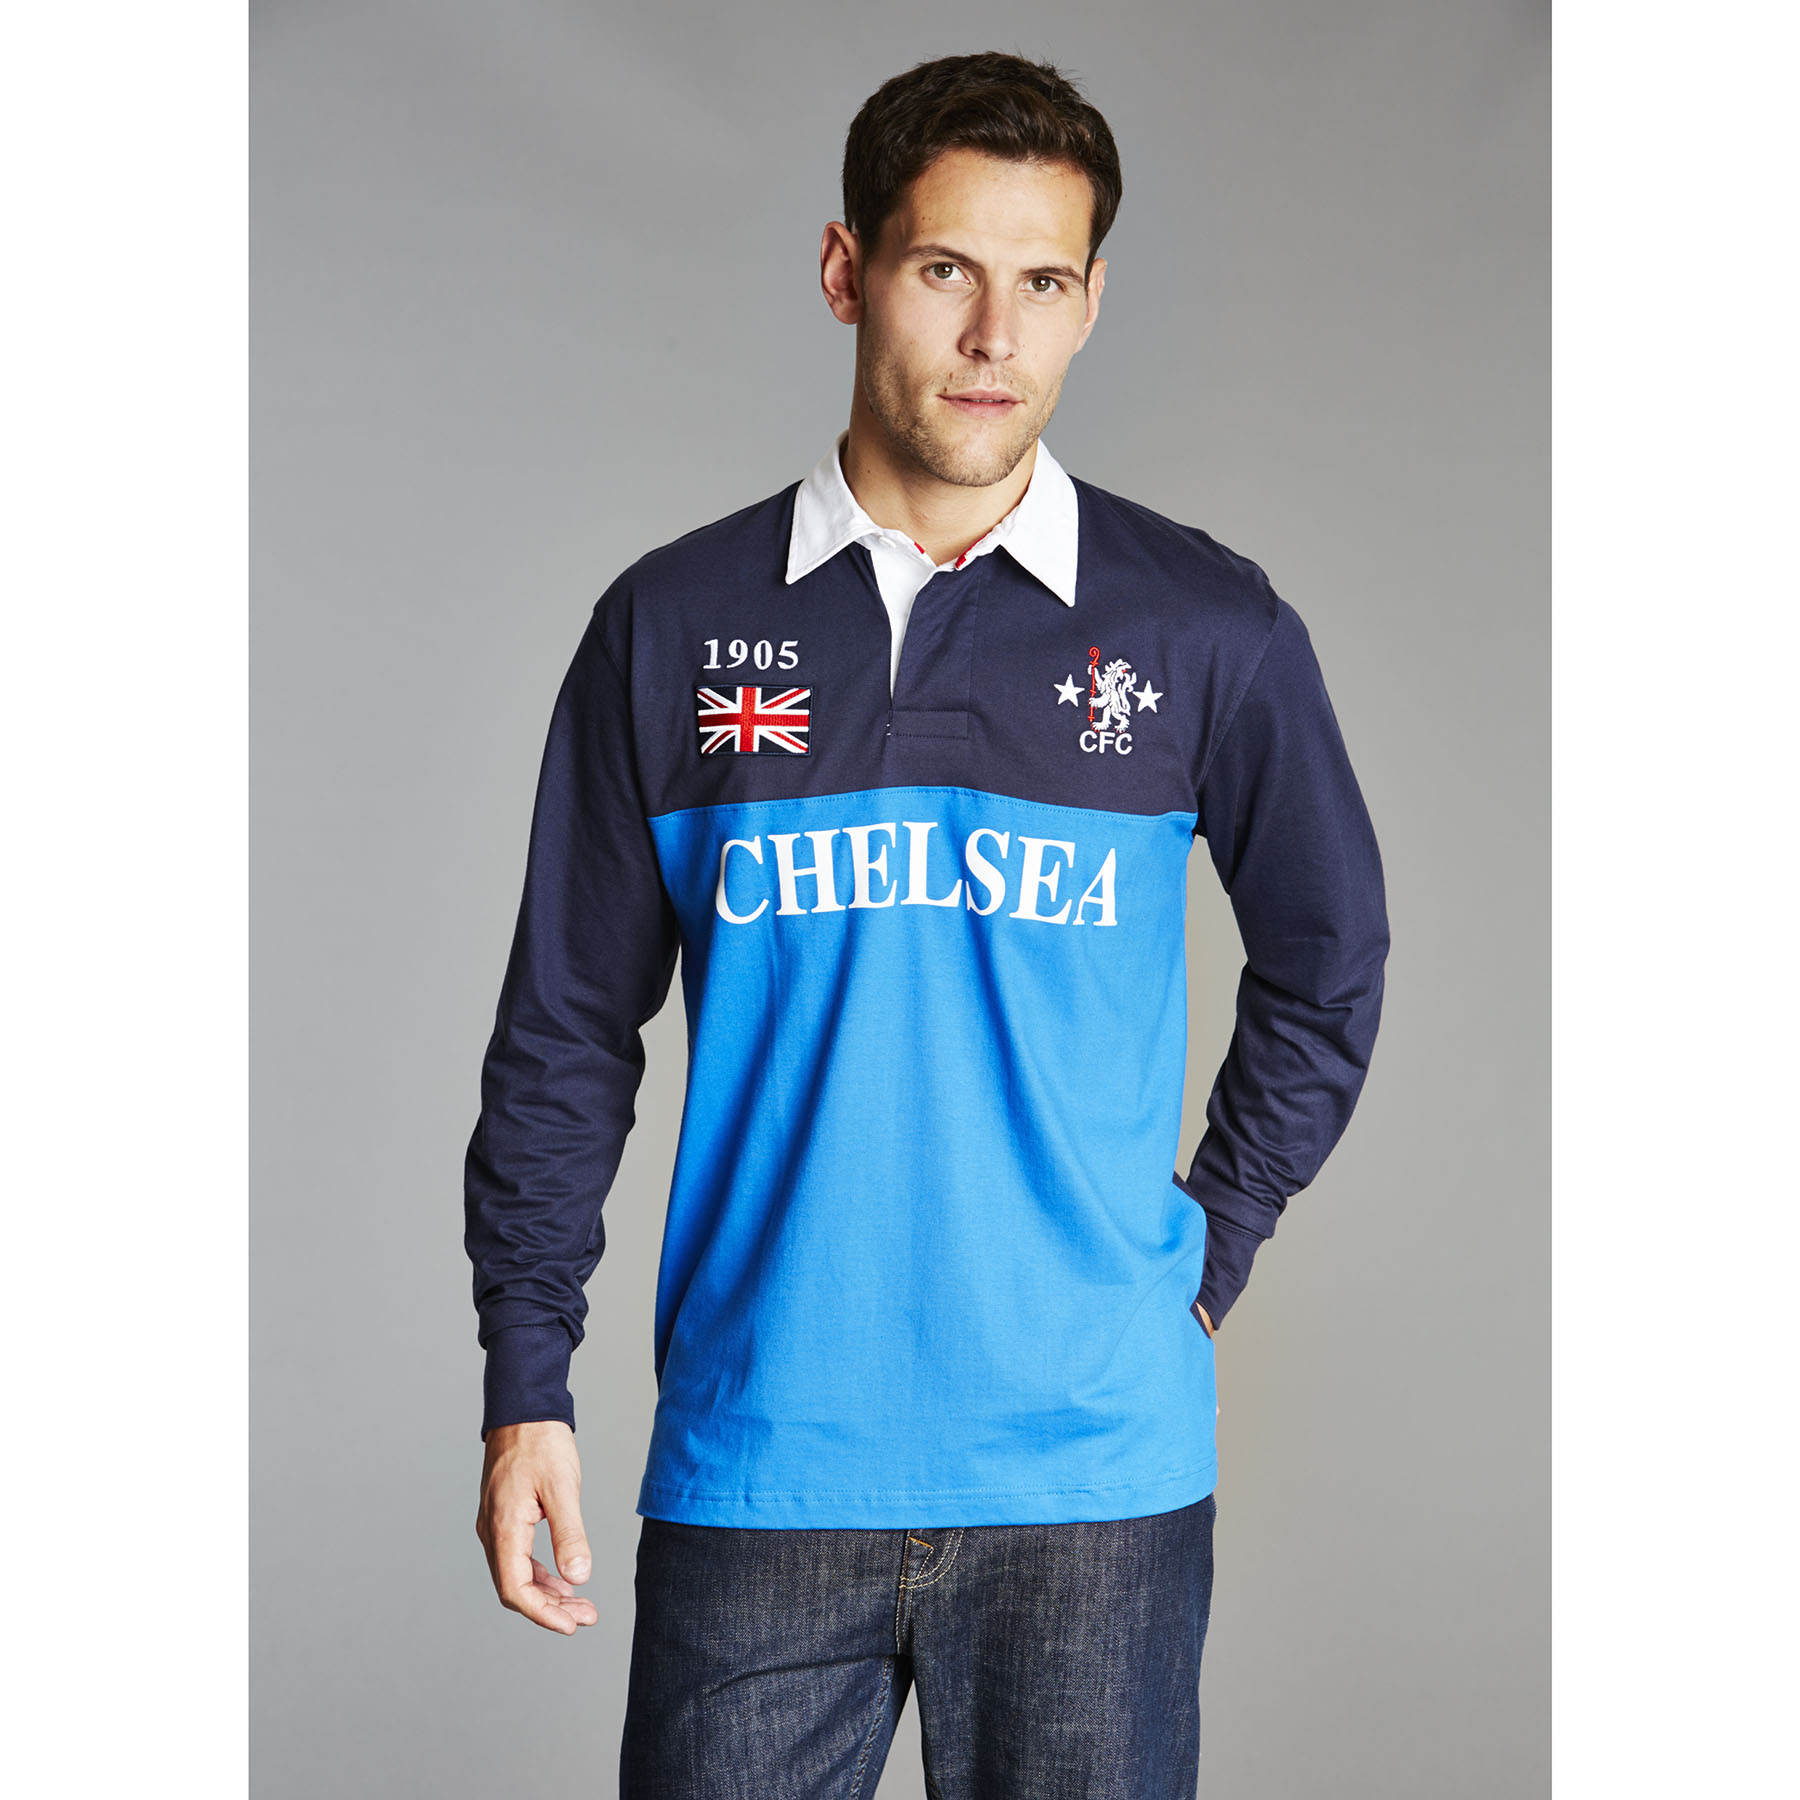 Chelsea Retro Rugby Shirt - Navy - Mens